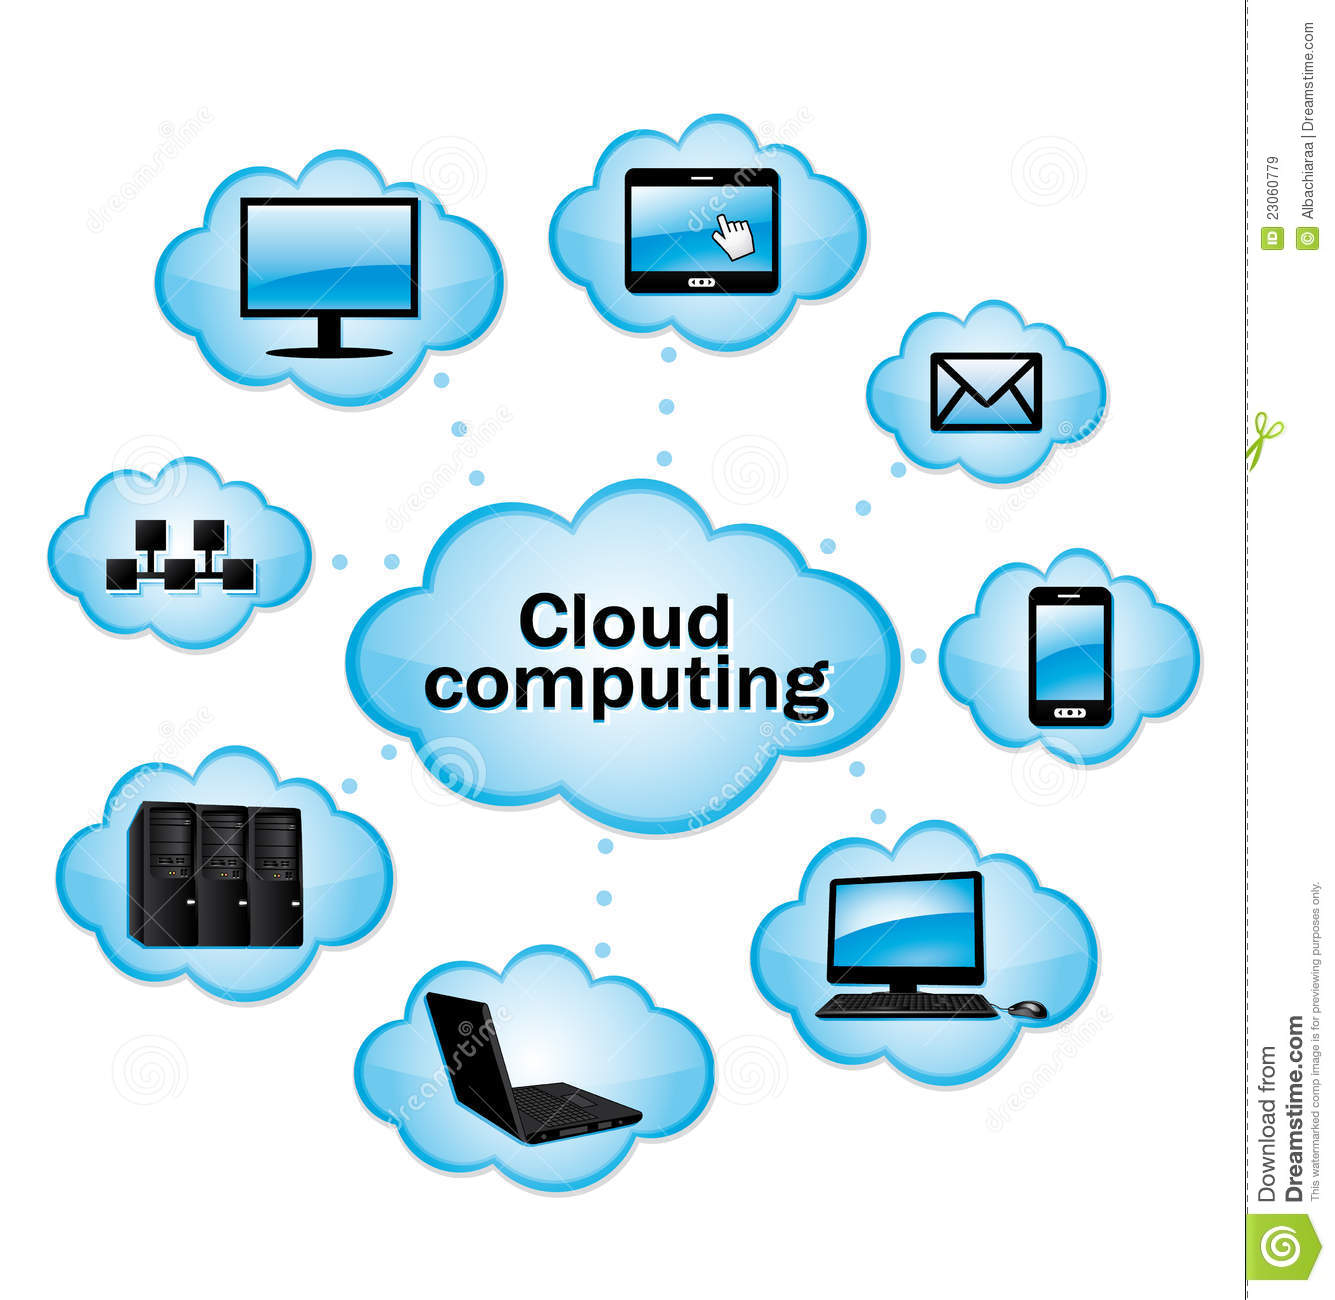 Networking Cloud Computing: Cloud Computing. Royalty Free Stock Images